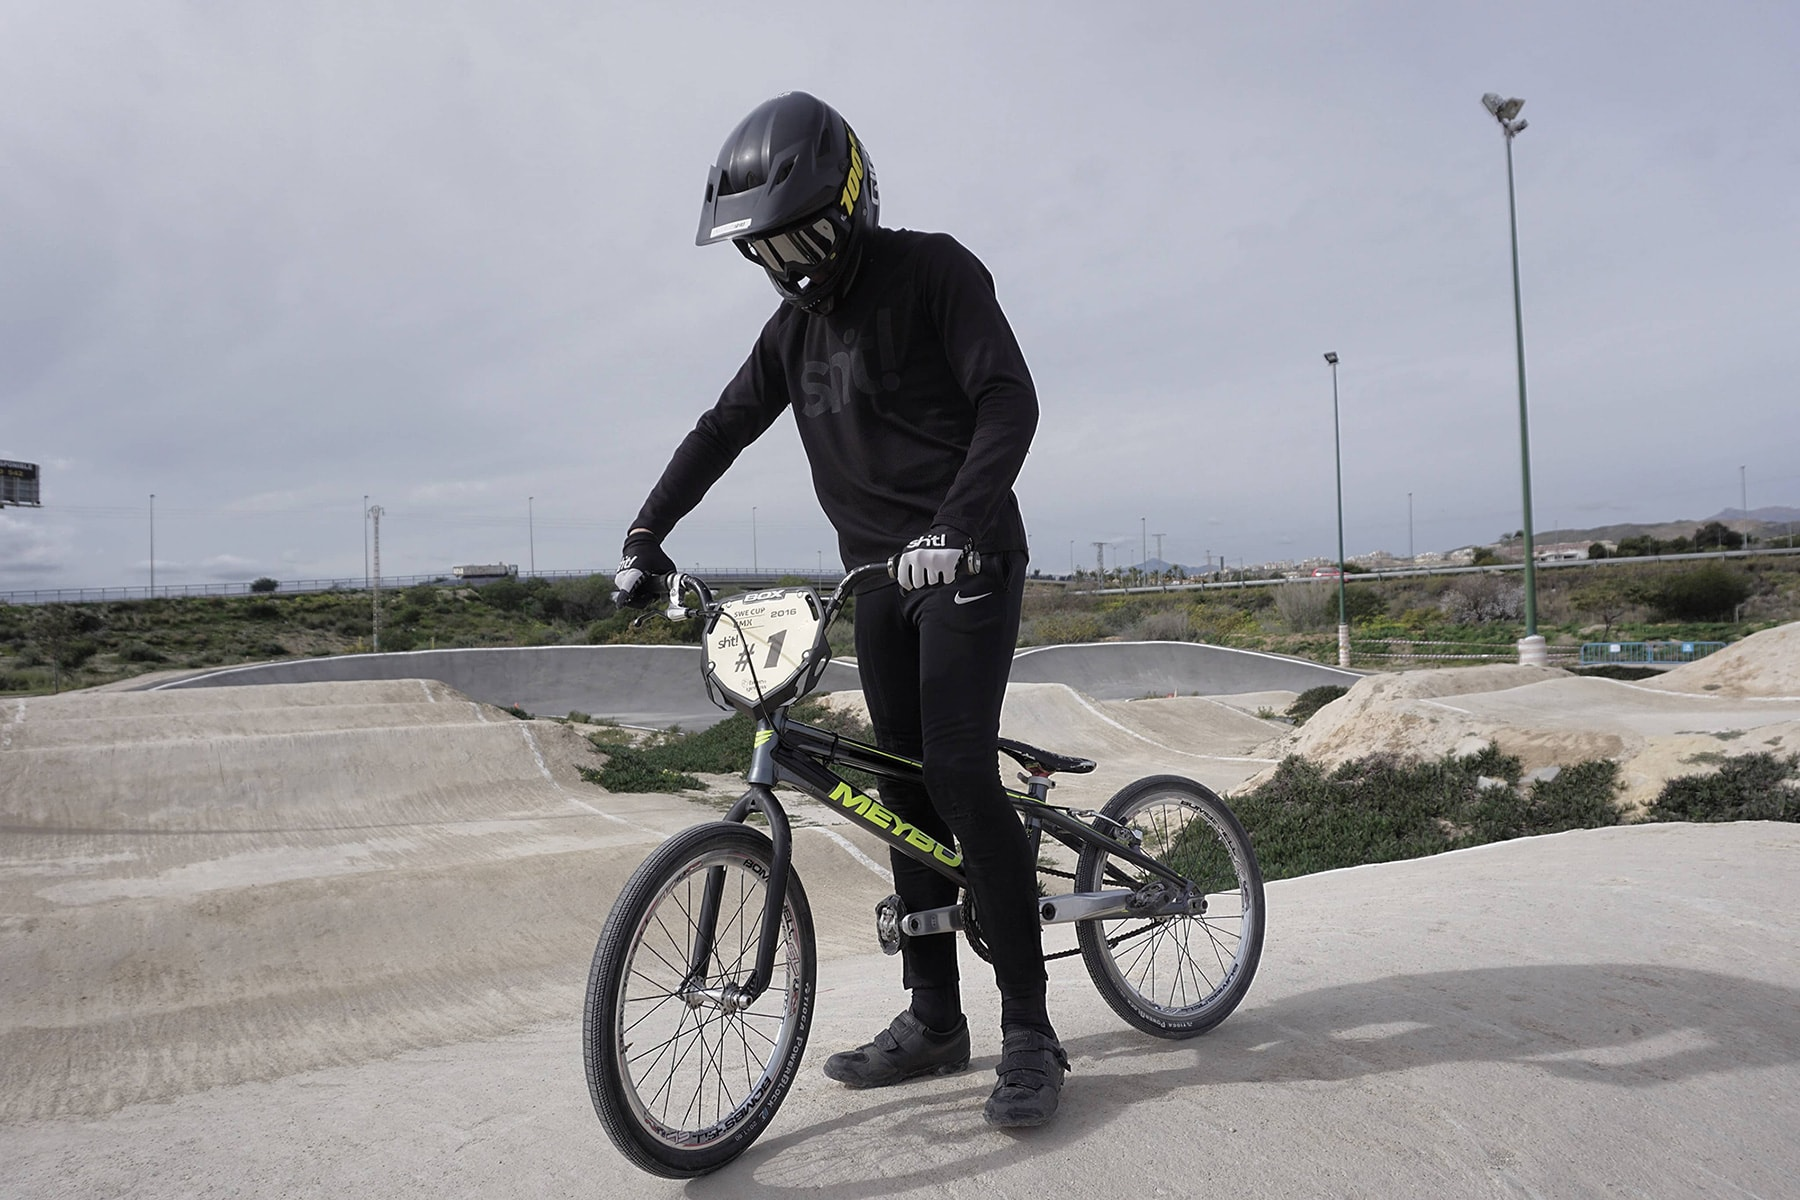 Oskar Kindblom bmx racing pose in Spain